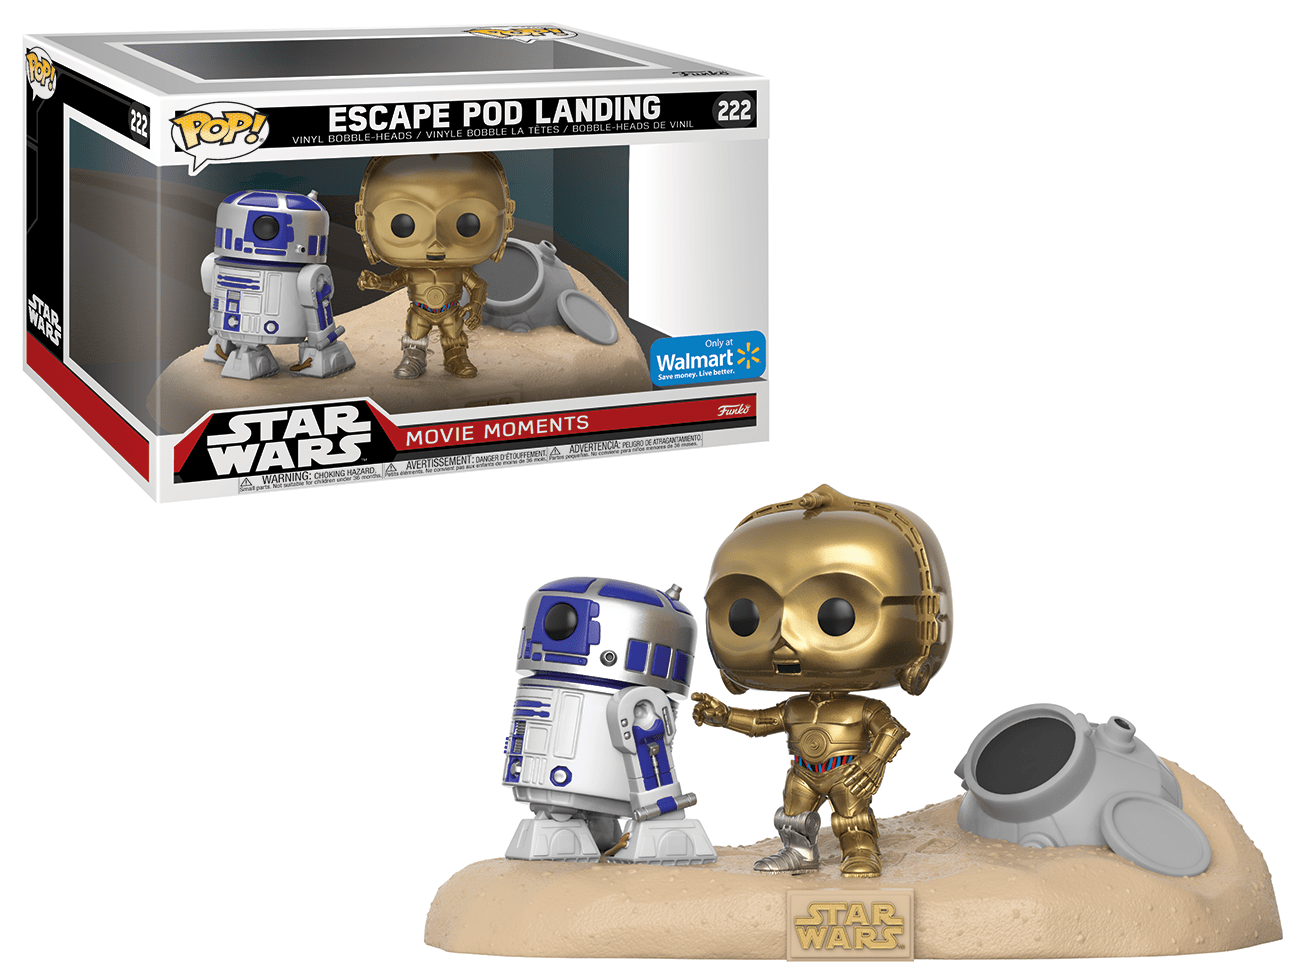 Star Wars Movie Moments Pop Vinyl Packs Coming Soon To Walmart Funko Pop Star Wars Pop Figurine Funko Pop Collection